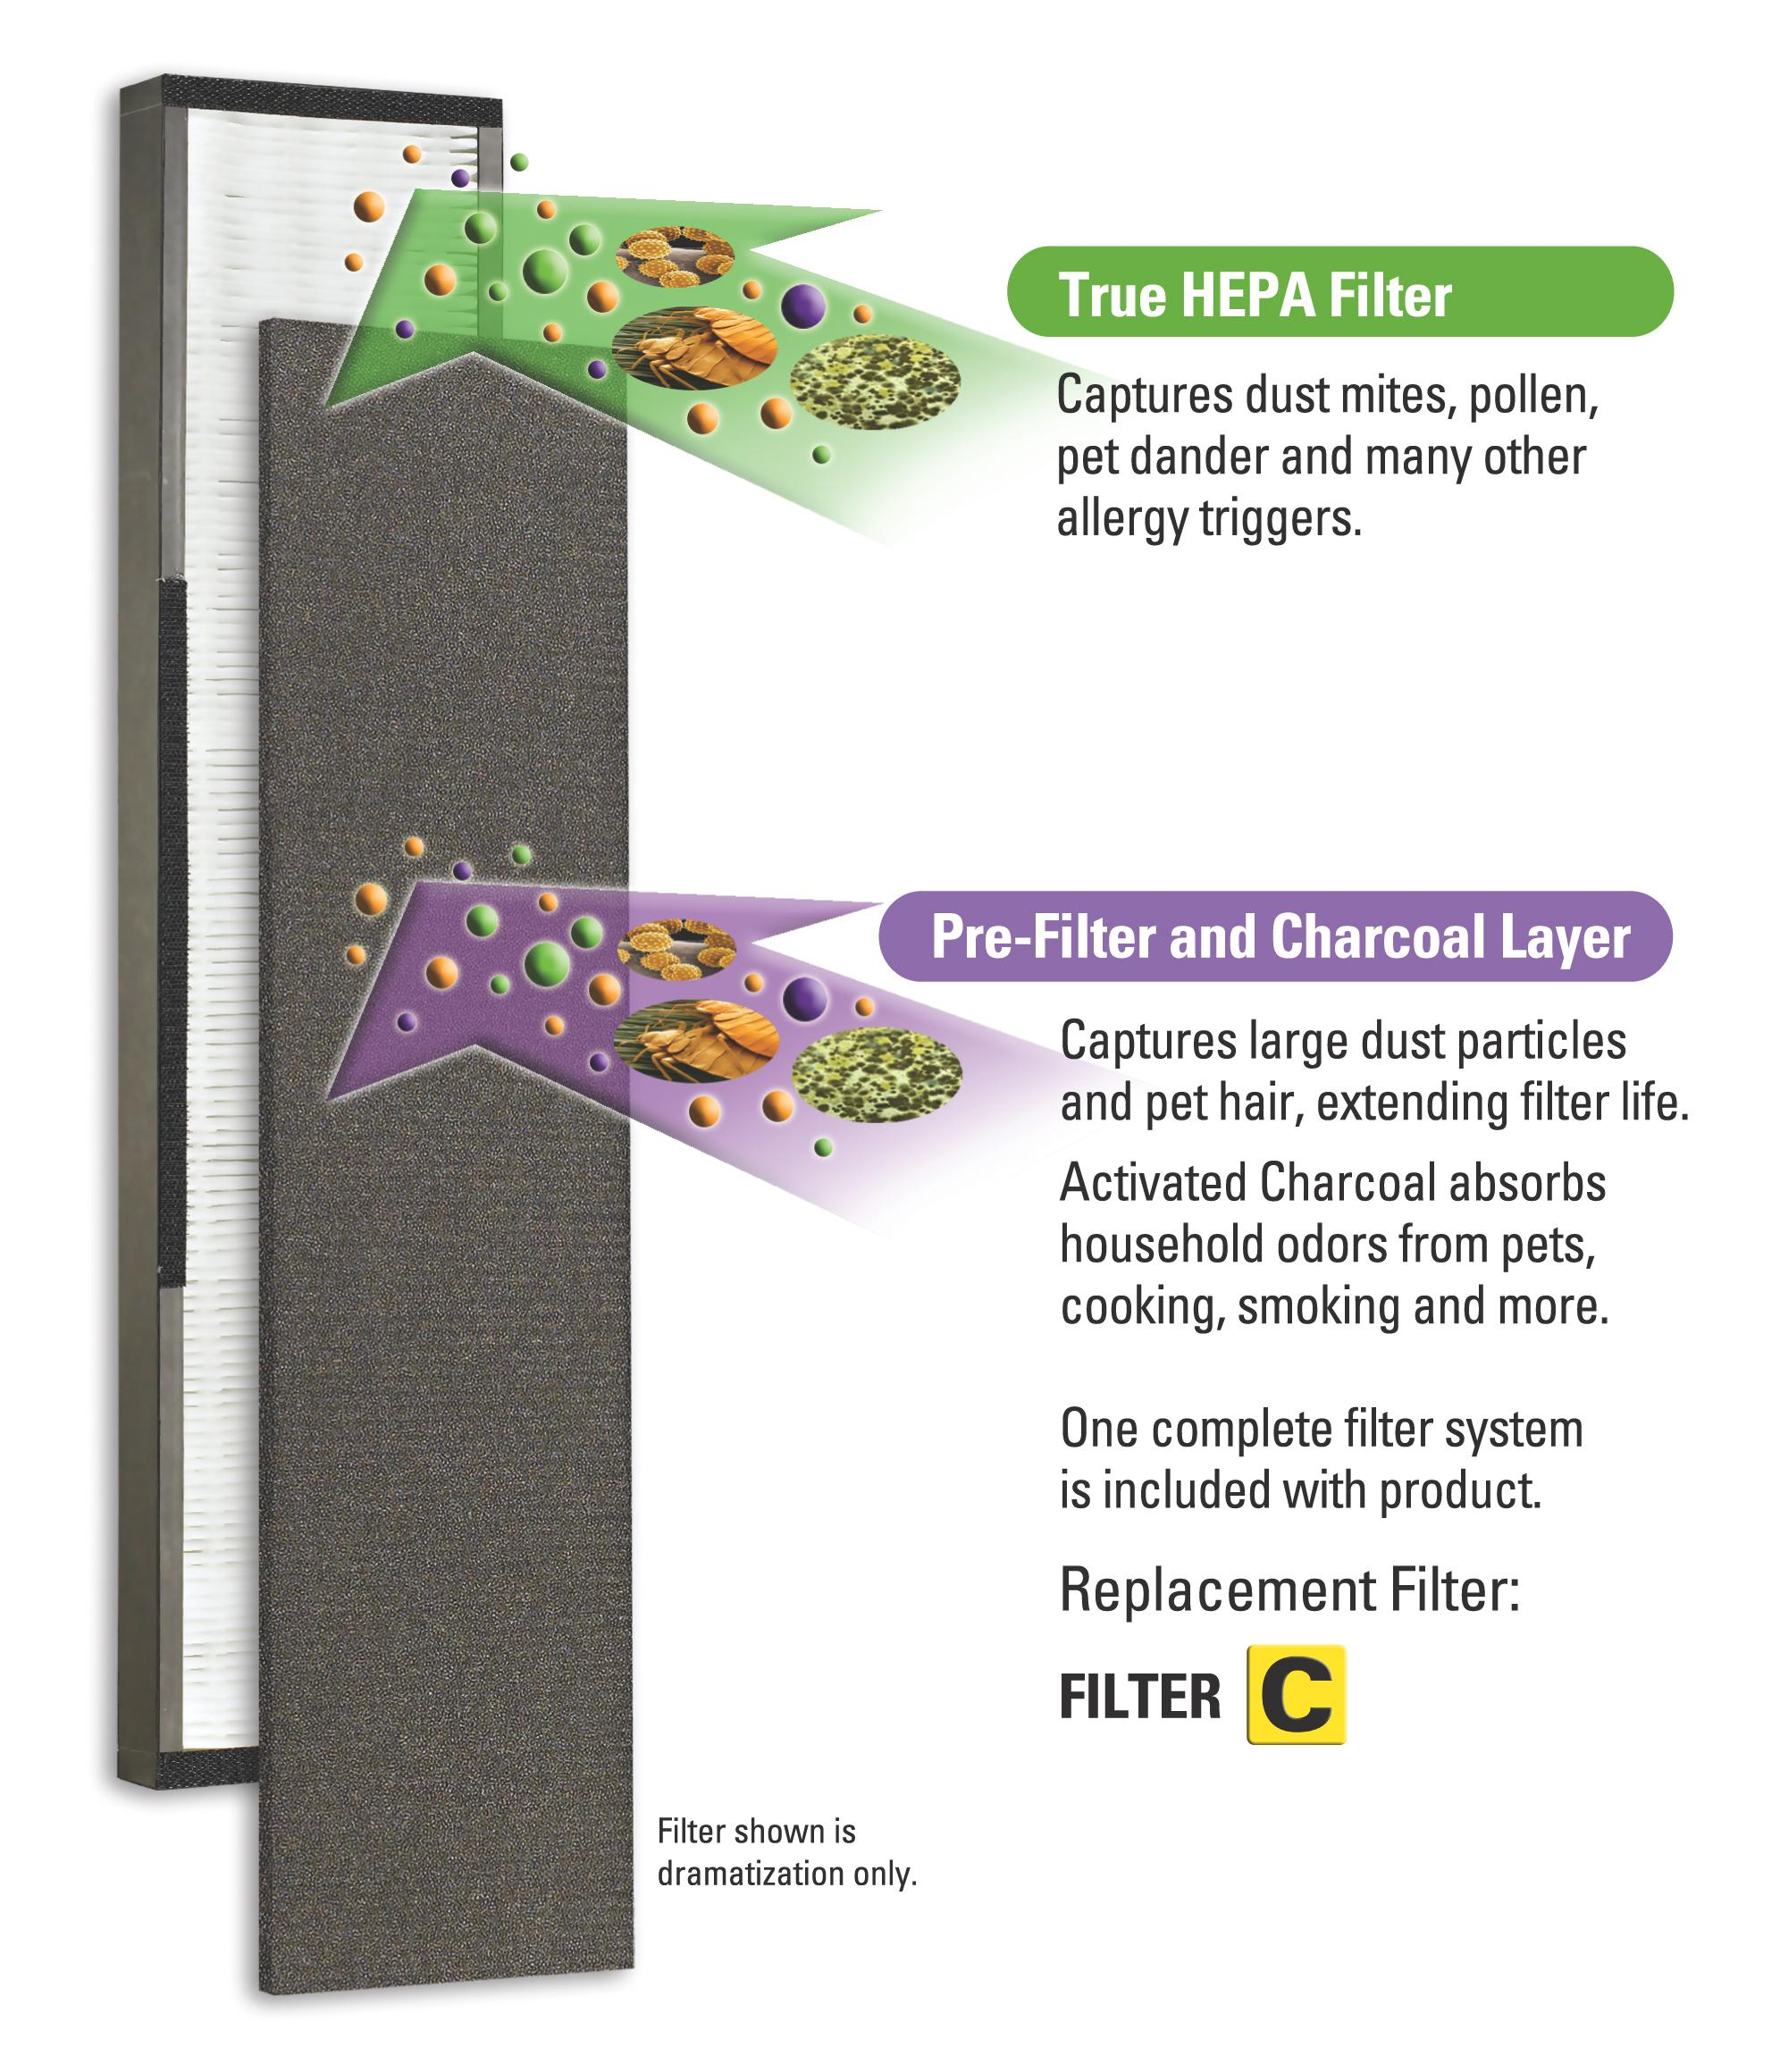 Best air filter for allergies and pet dander - View Larger